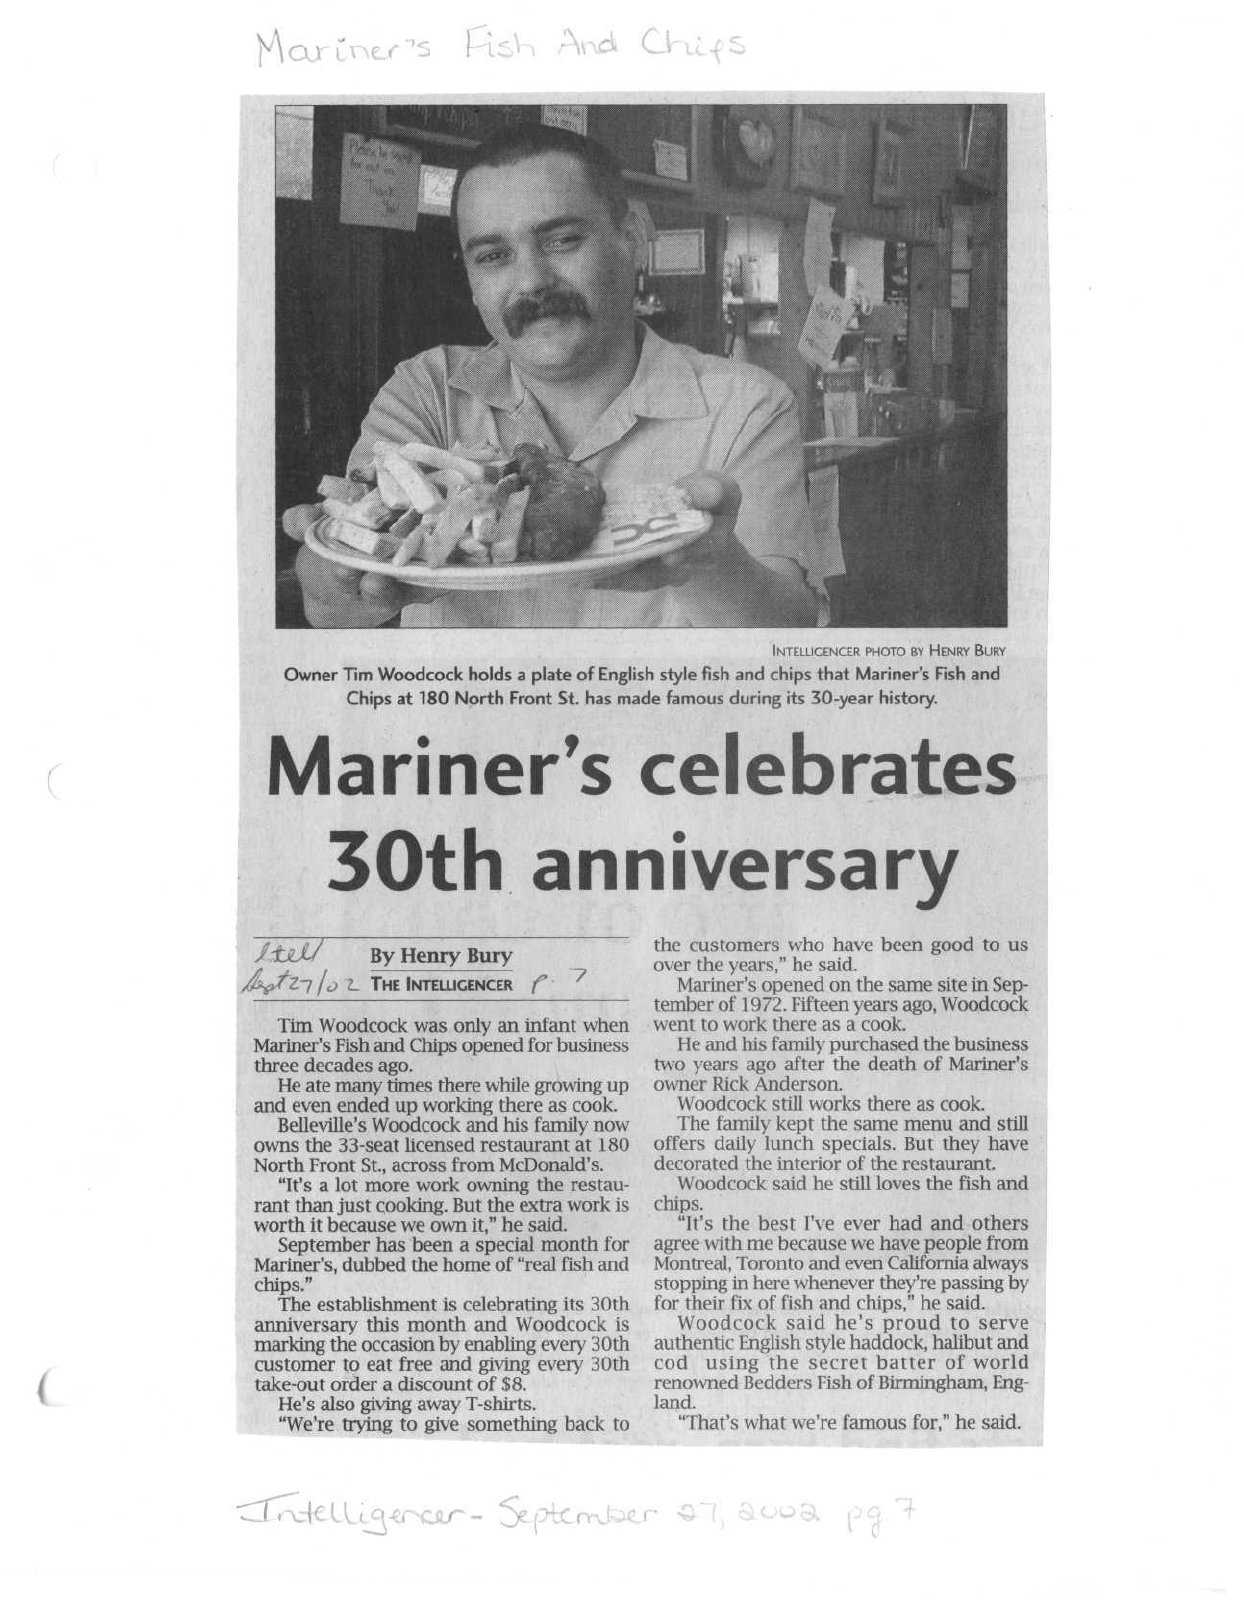 Mariner's celebrates 30th anniversary